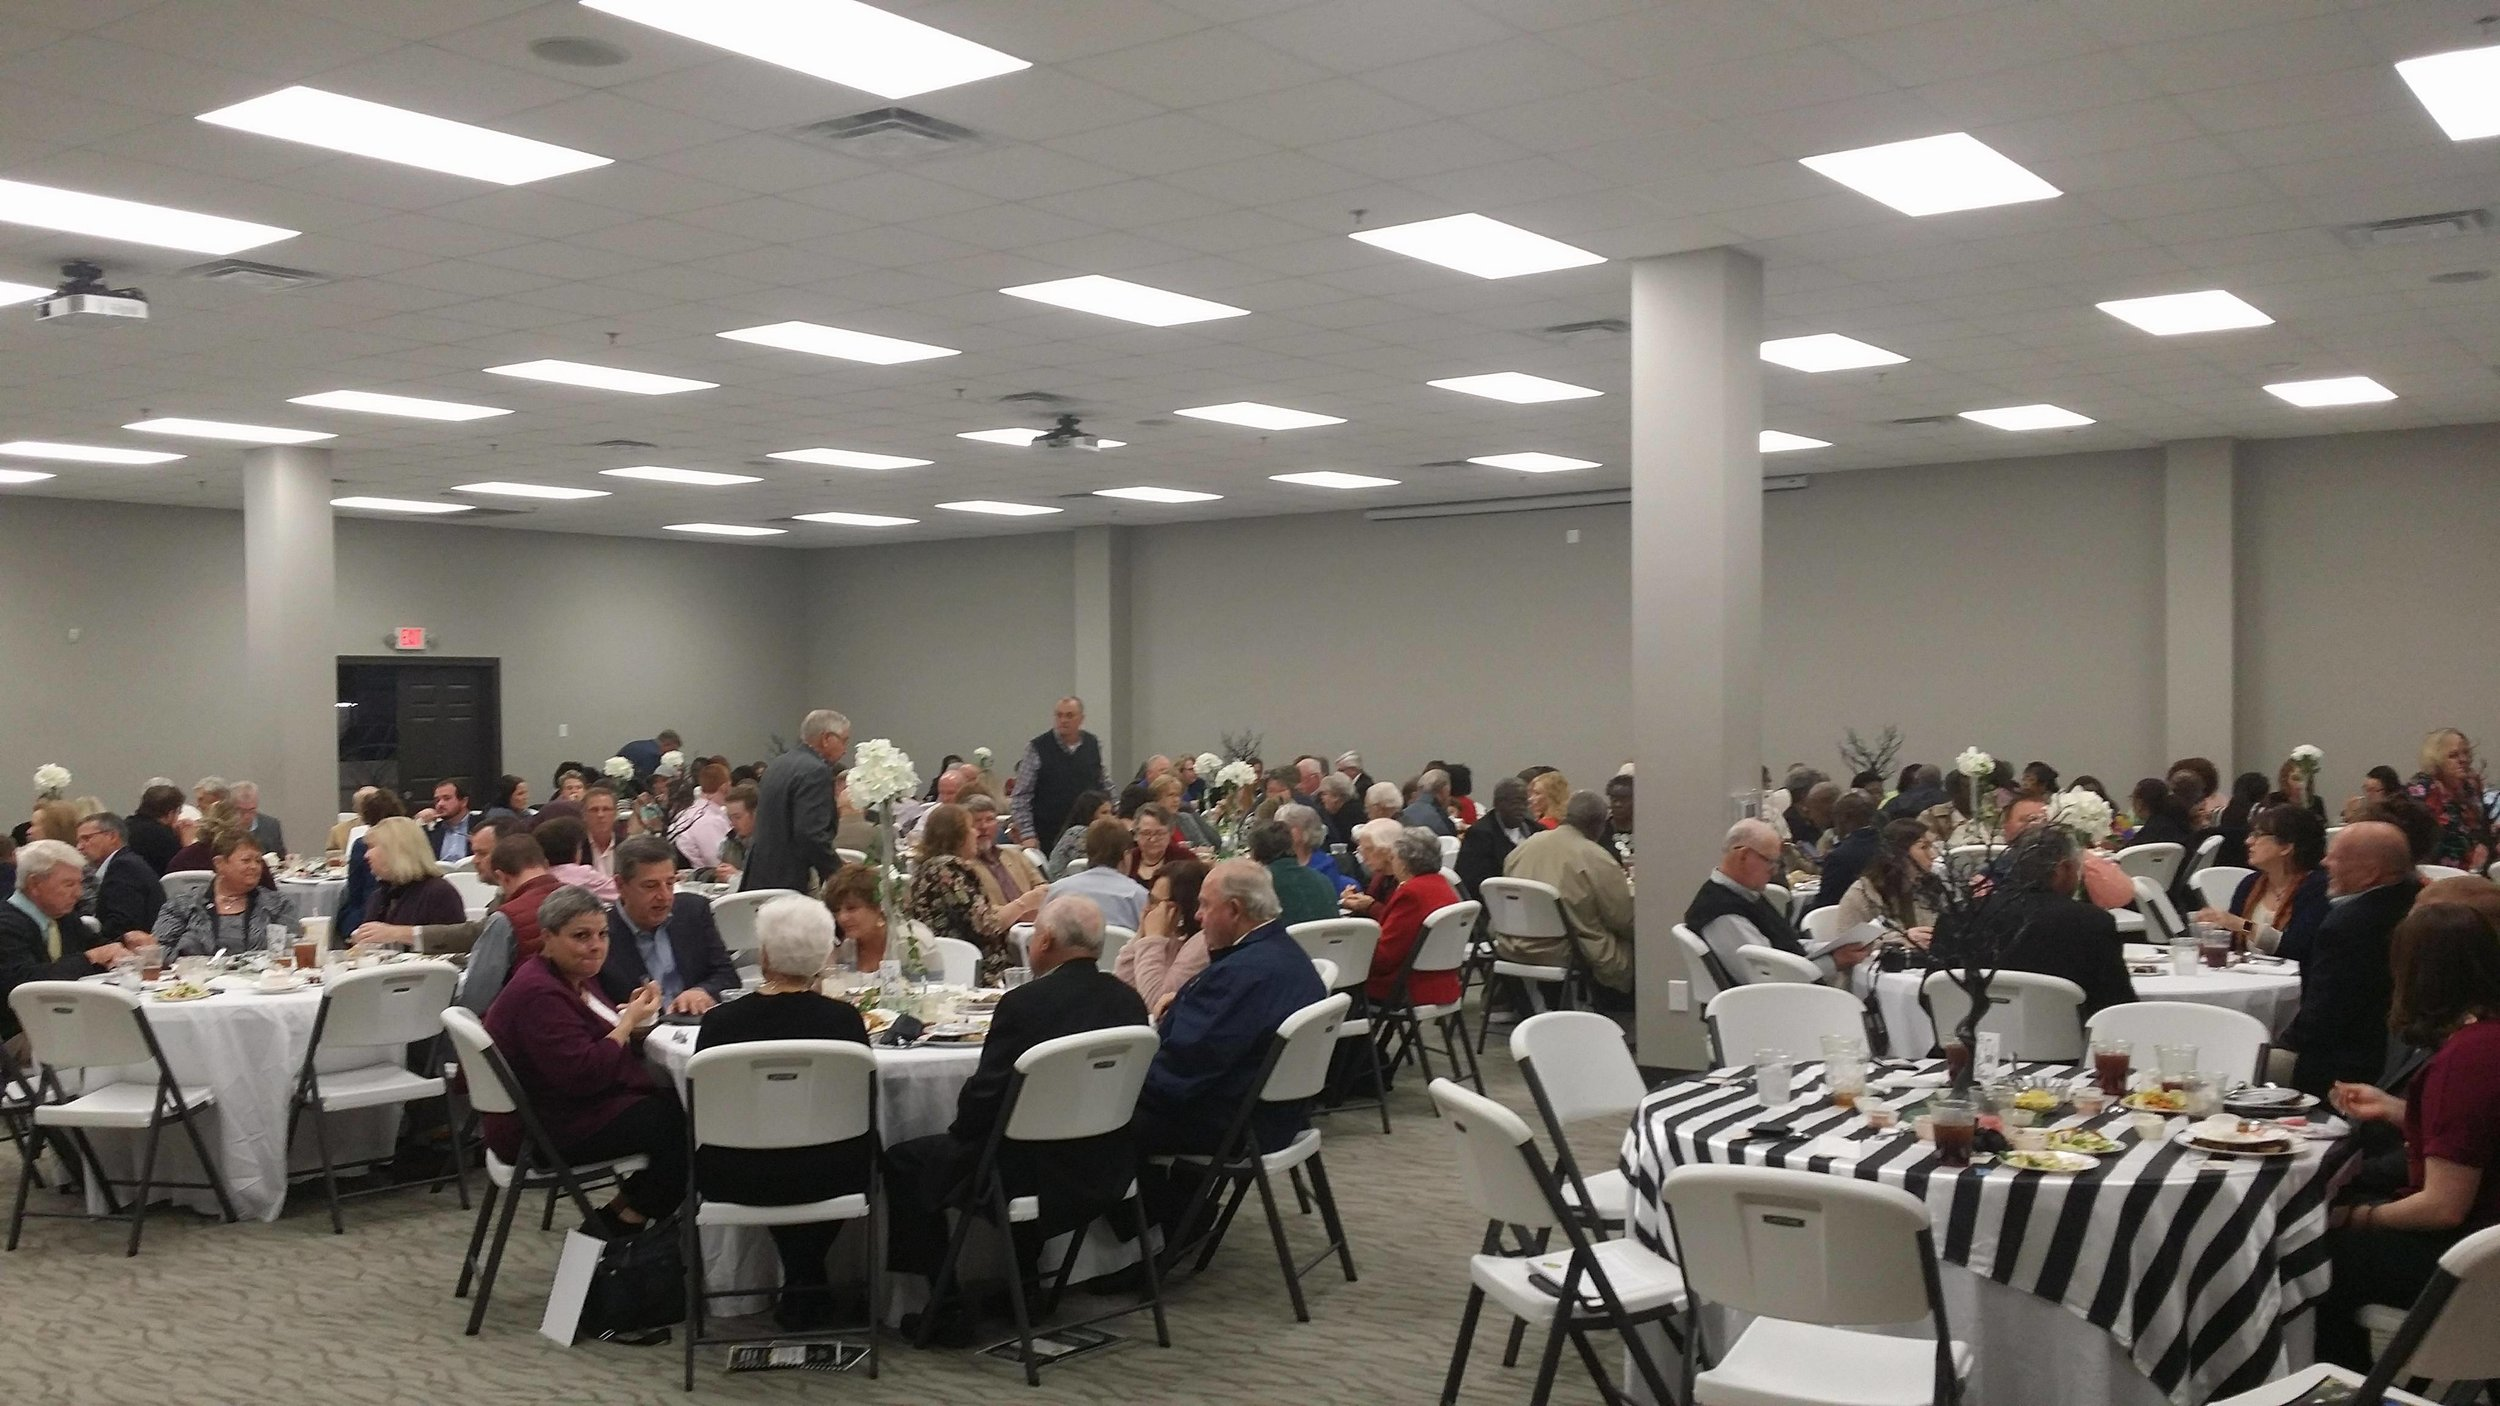 Attendees of the annual La Grange Chamber of Commerce Banquet dine at the La Grange Community Center. Photo by Jon Dawson / Neuse News